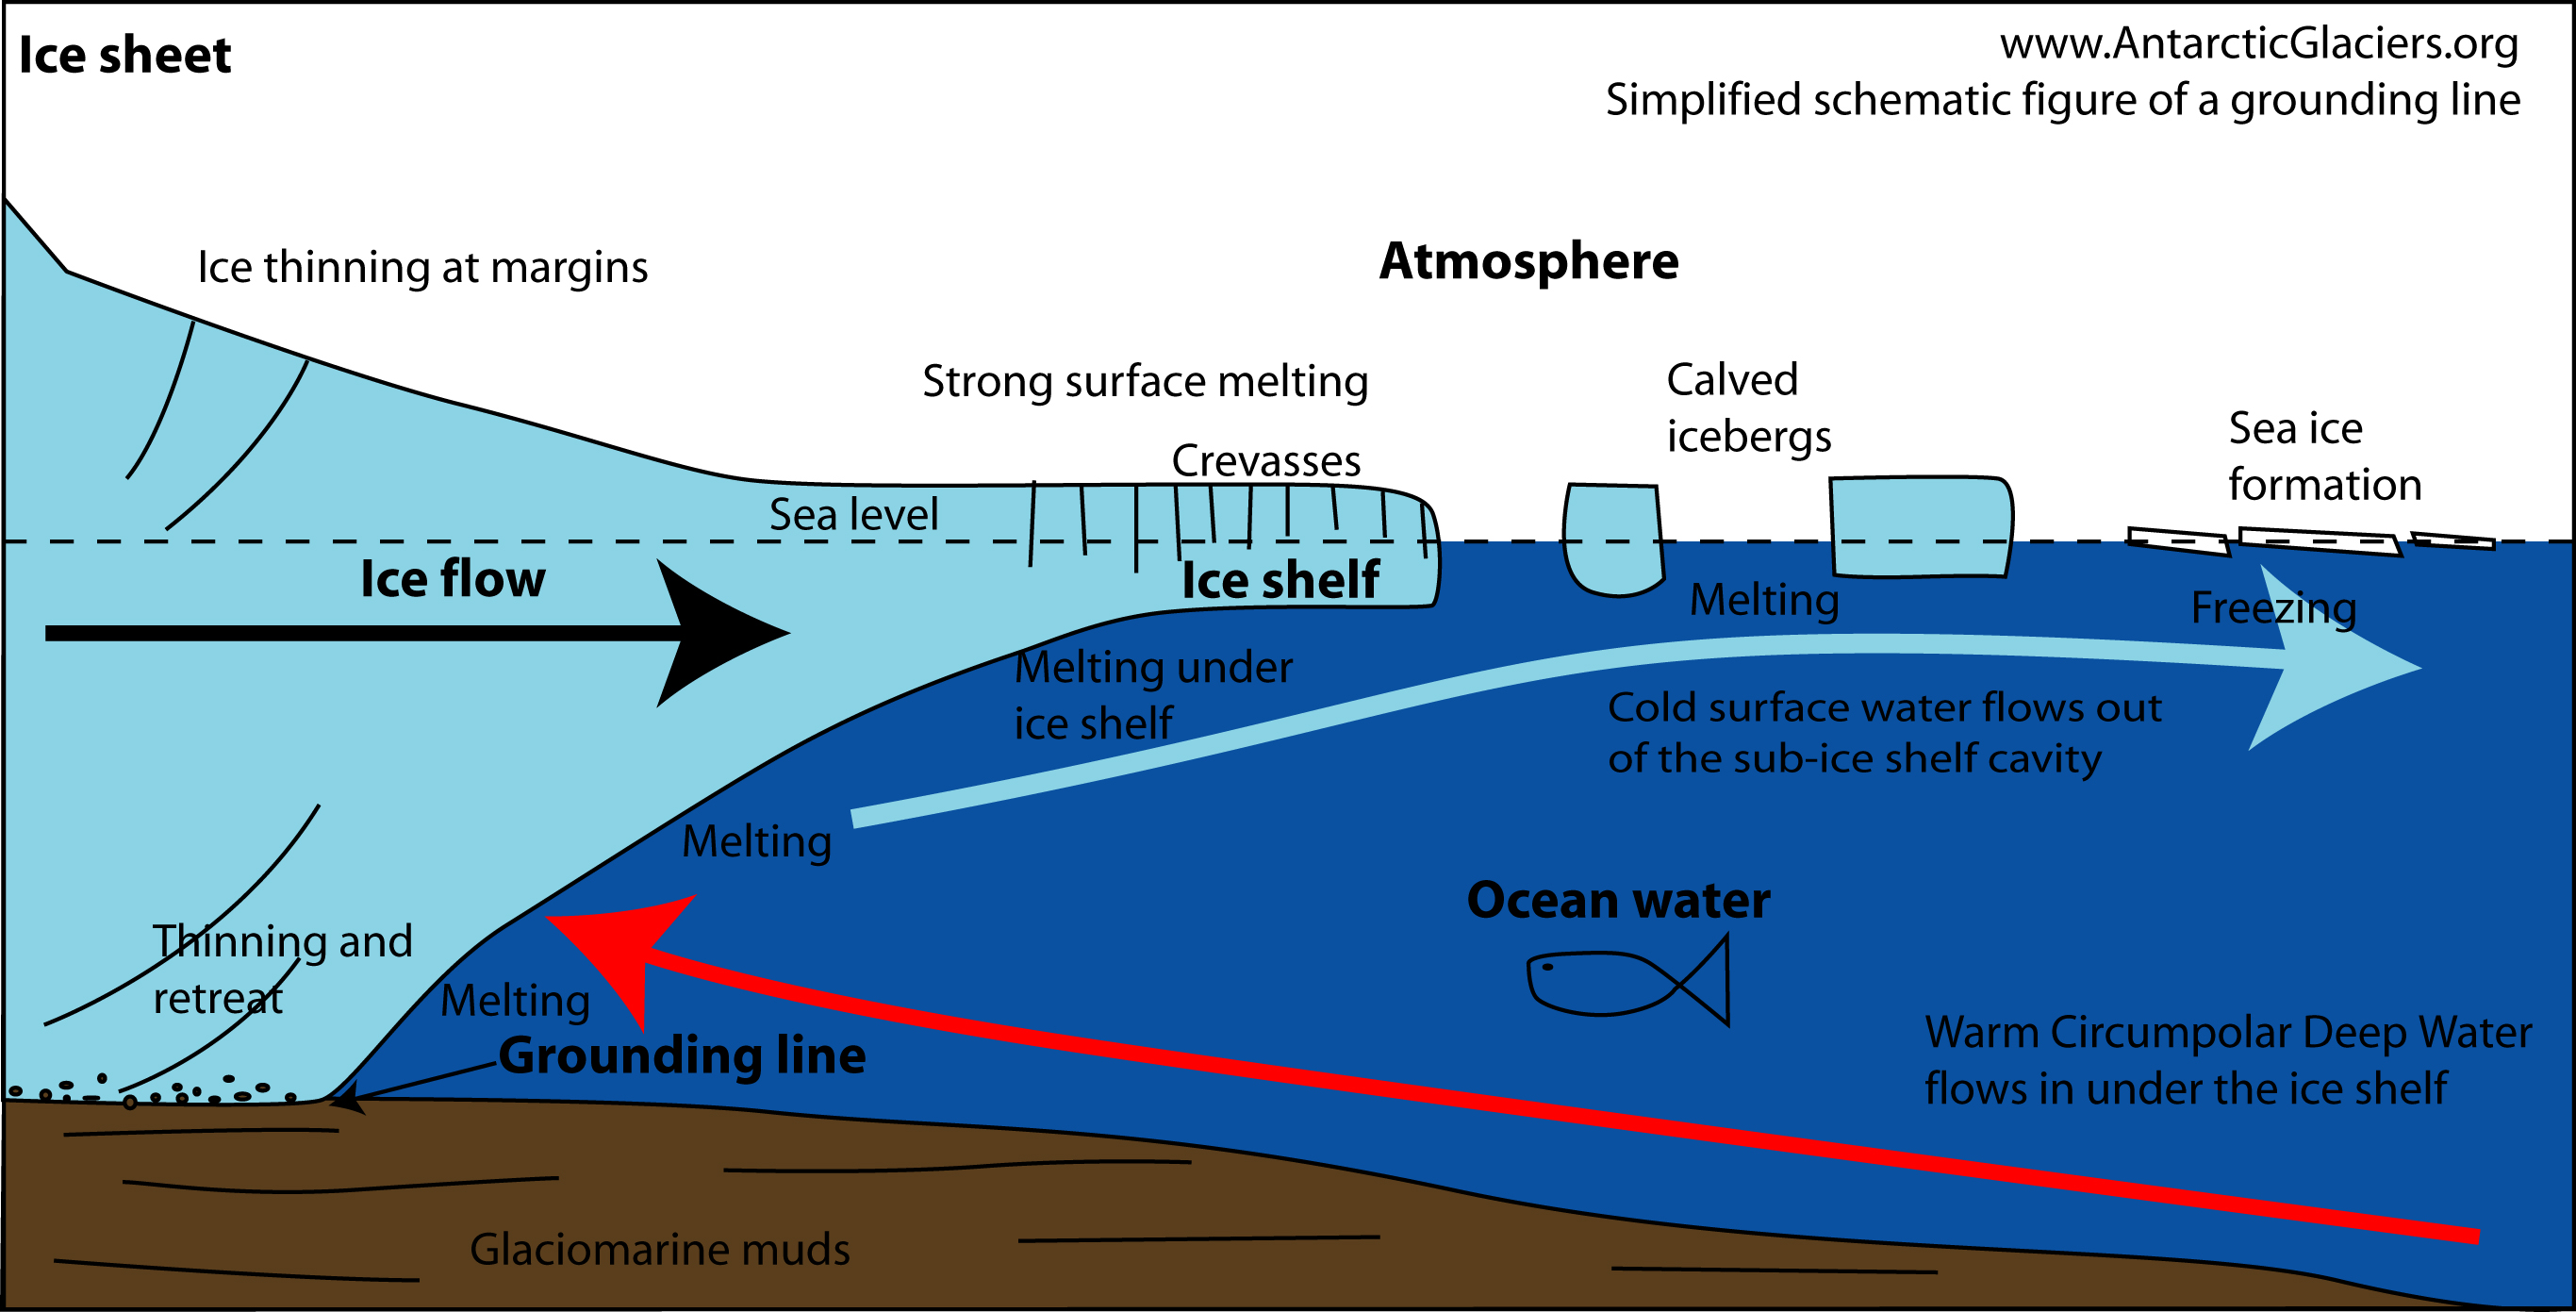 Glacier grounding line diagram